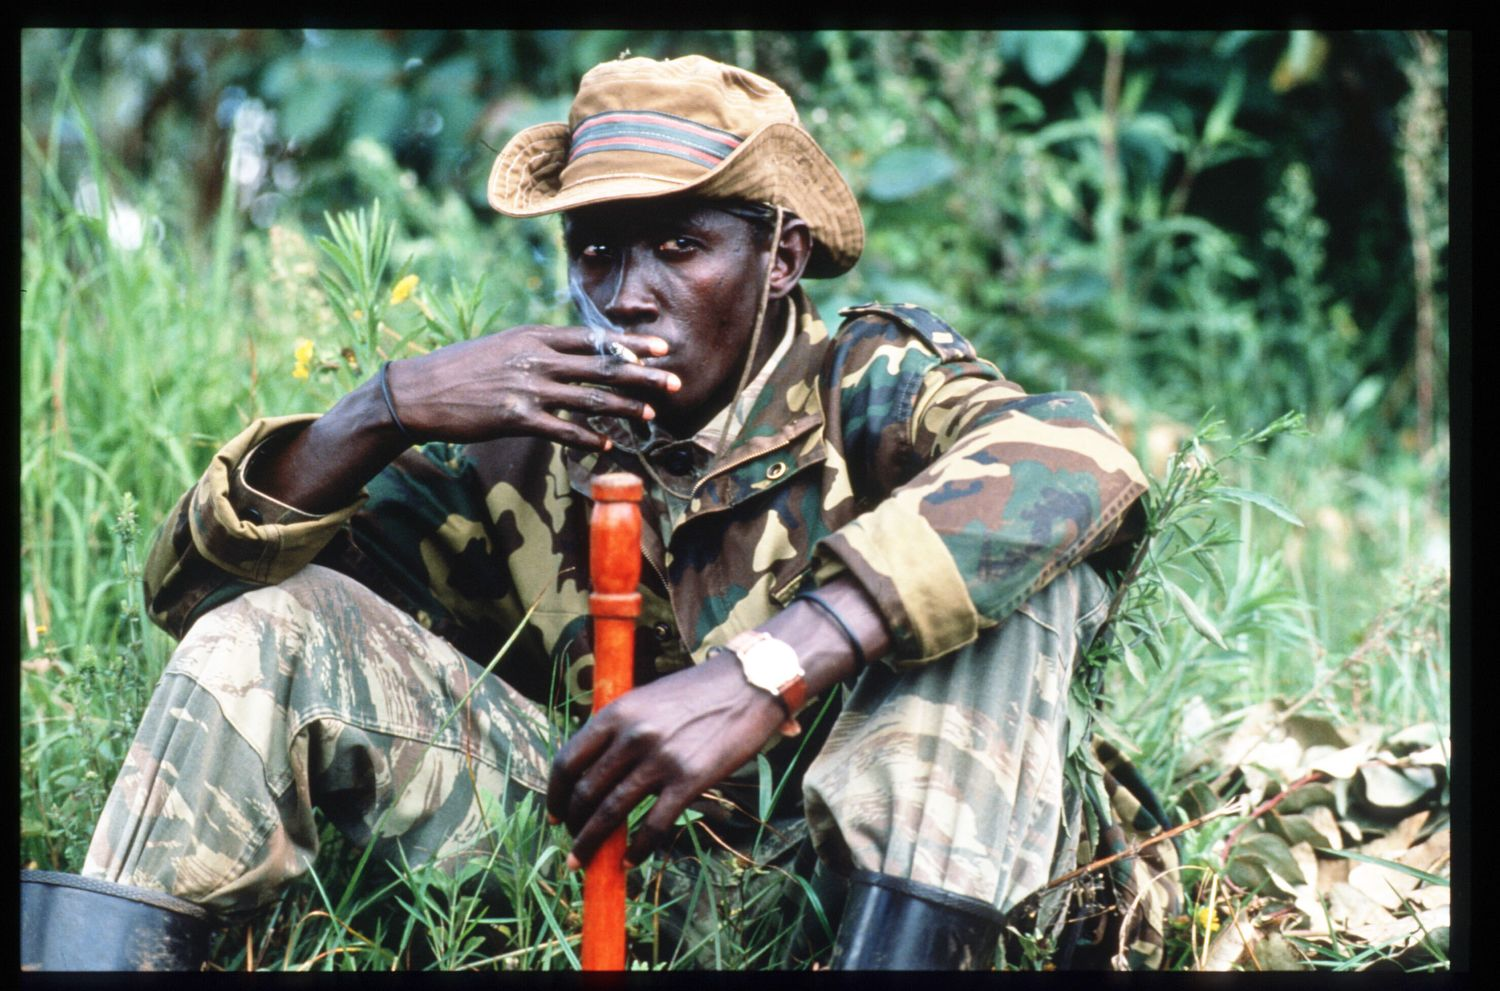 185252 35: A Rwandan Patriotic Front soldier smokes a cigarette April 7, 1994 outside of Byumba, Rwanda. Following the apparent assassination of Rwandan President Juvenal Habyarimana, the Hutu government and its supporters killed thousands of Tutsi civilians, renewing the civil war between the Tutsi-led RPF and the Hutu-backed government. (Photo by Scott Peterson/Liaison)